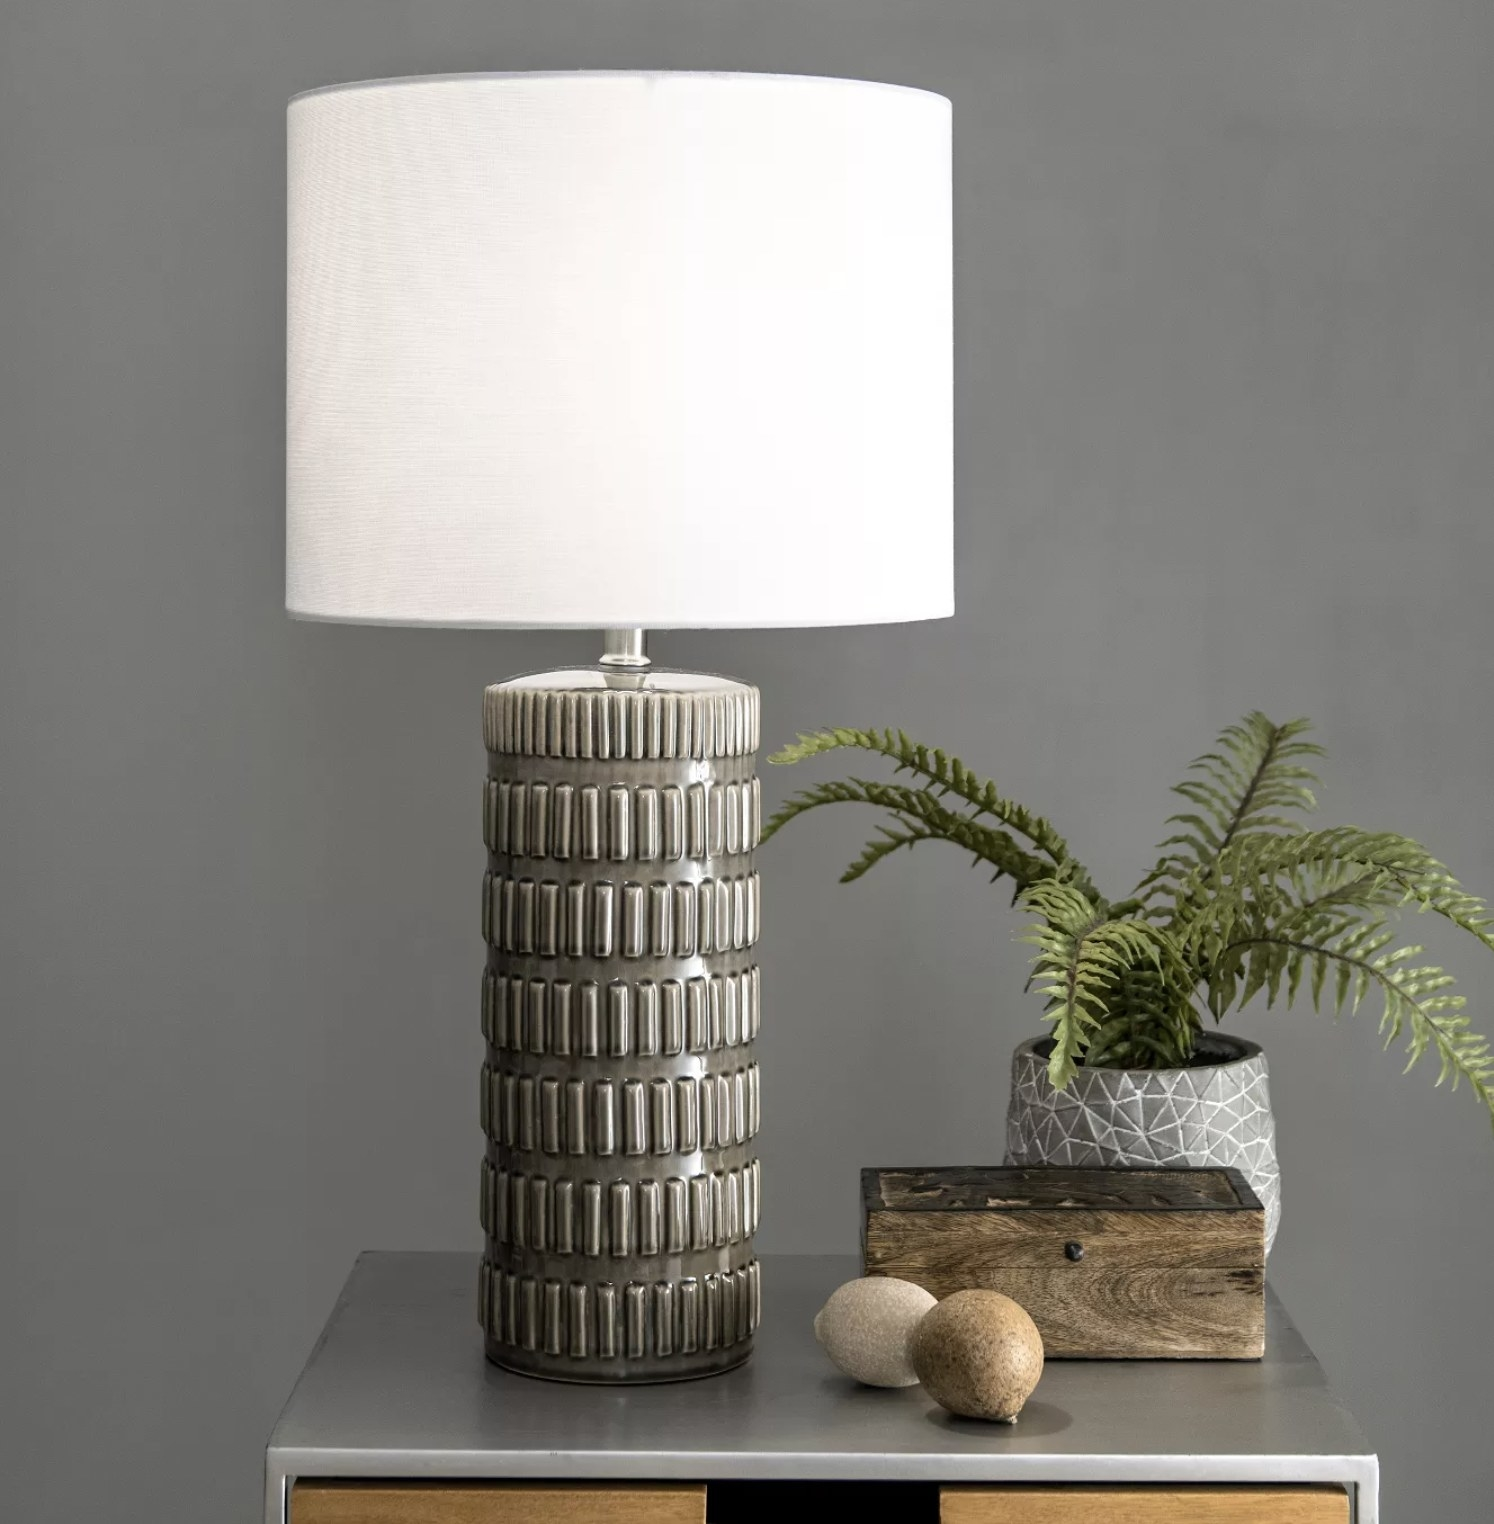 A gray lamp with rectangular pattern detailing